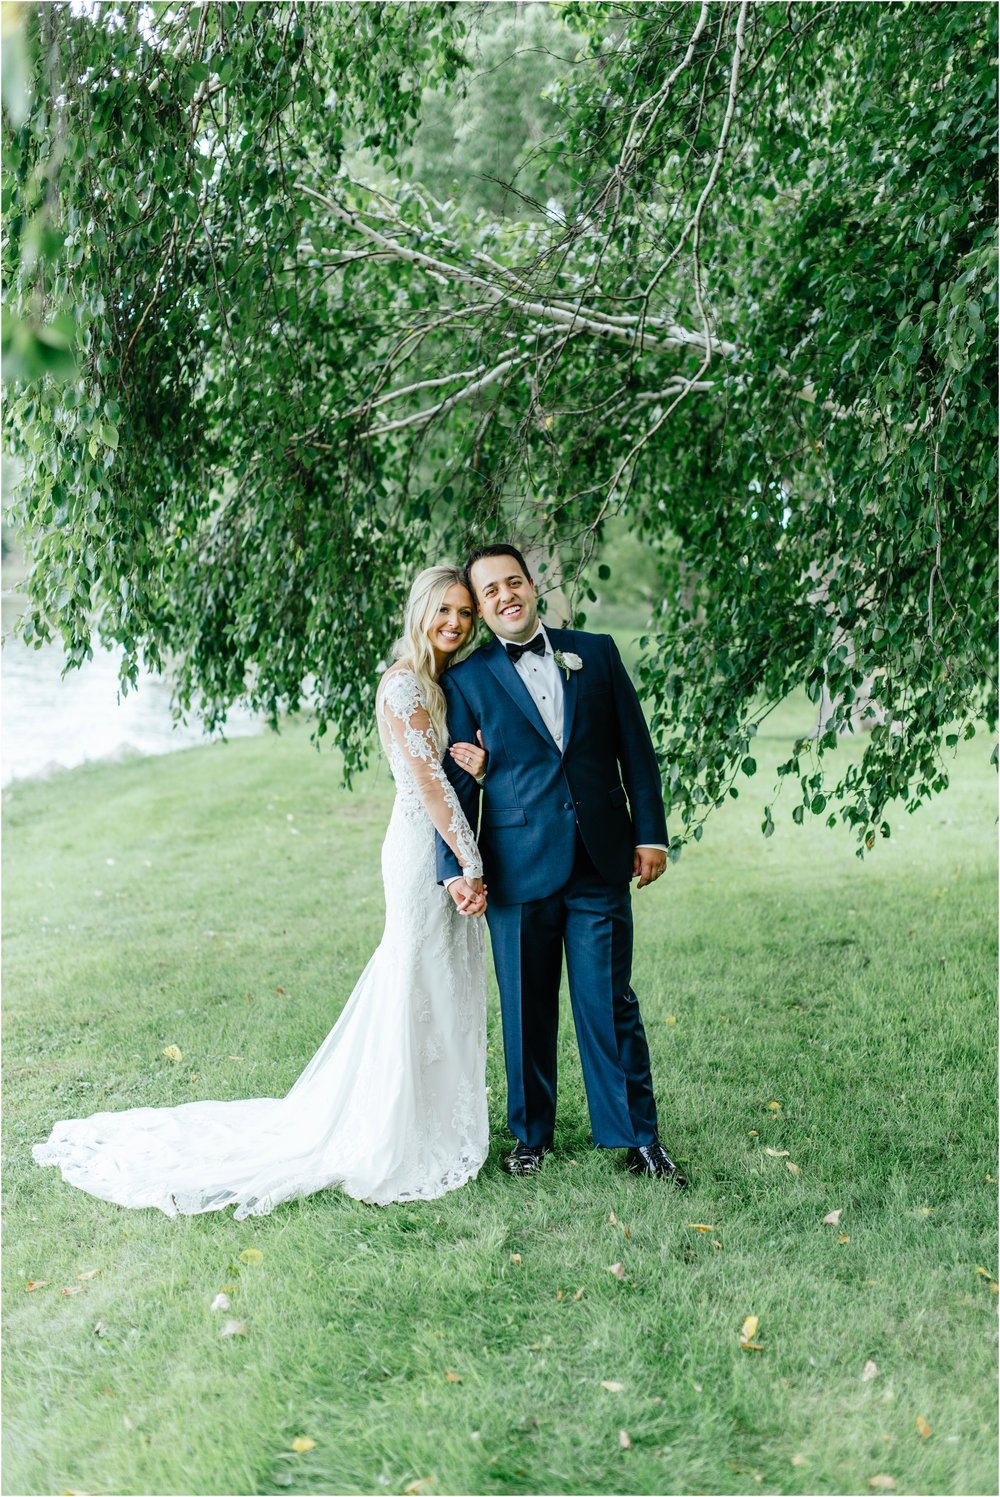 dallasweddingphotographer_fortworthweddingphotographer_texasweddingphotographer_mattandjulieweddings_vinyardwedding_Chelsey+Tom_0036.jpg